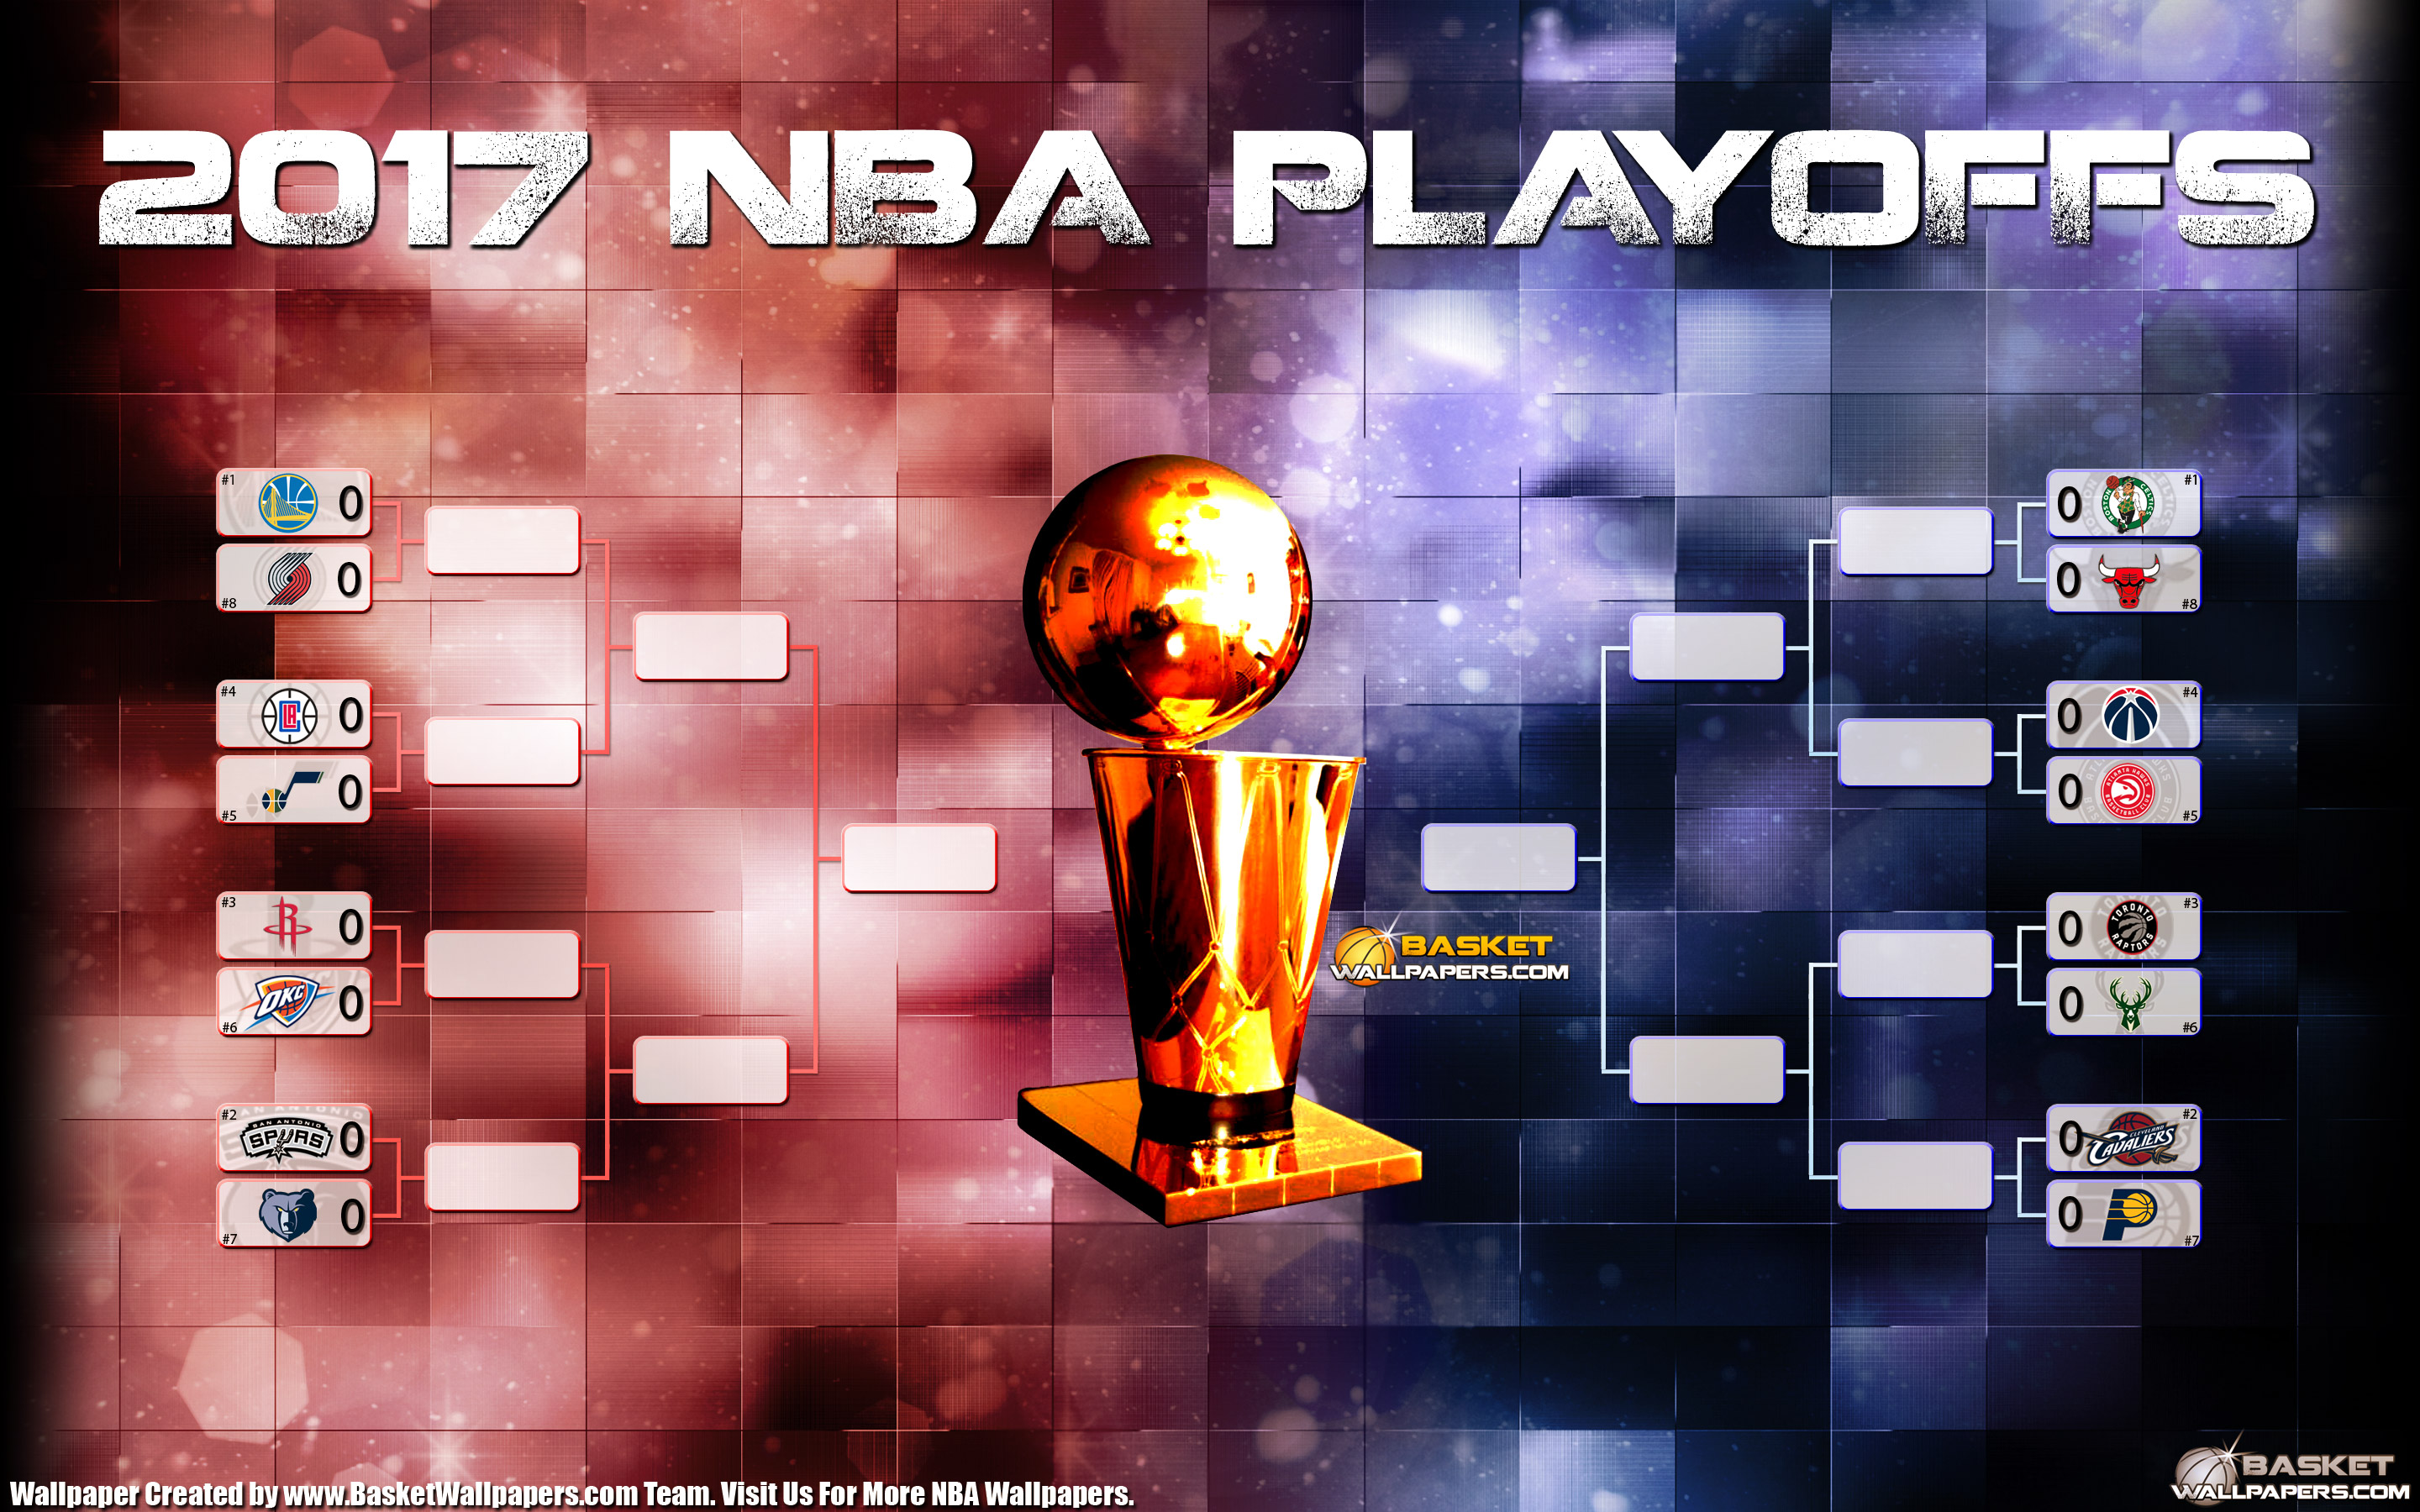 2017 NBA Playoffs Bracket 2880x1800 Wallpaper